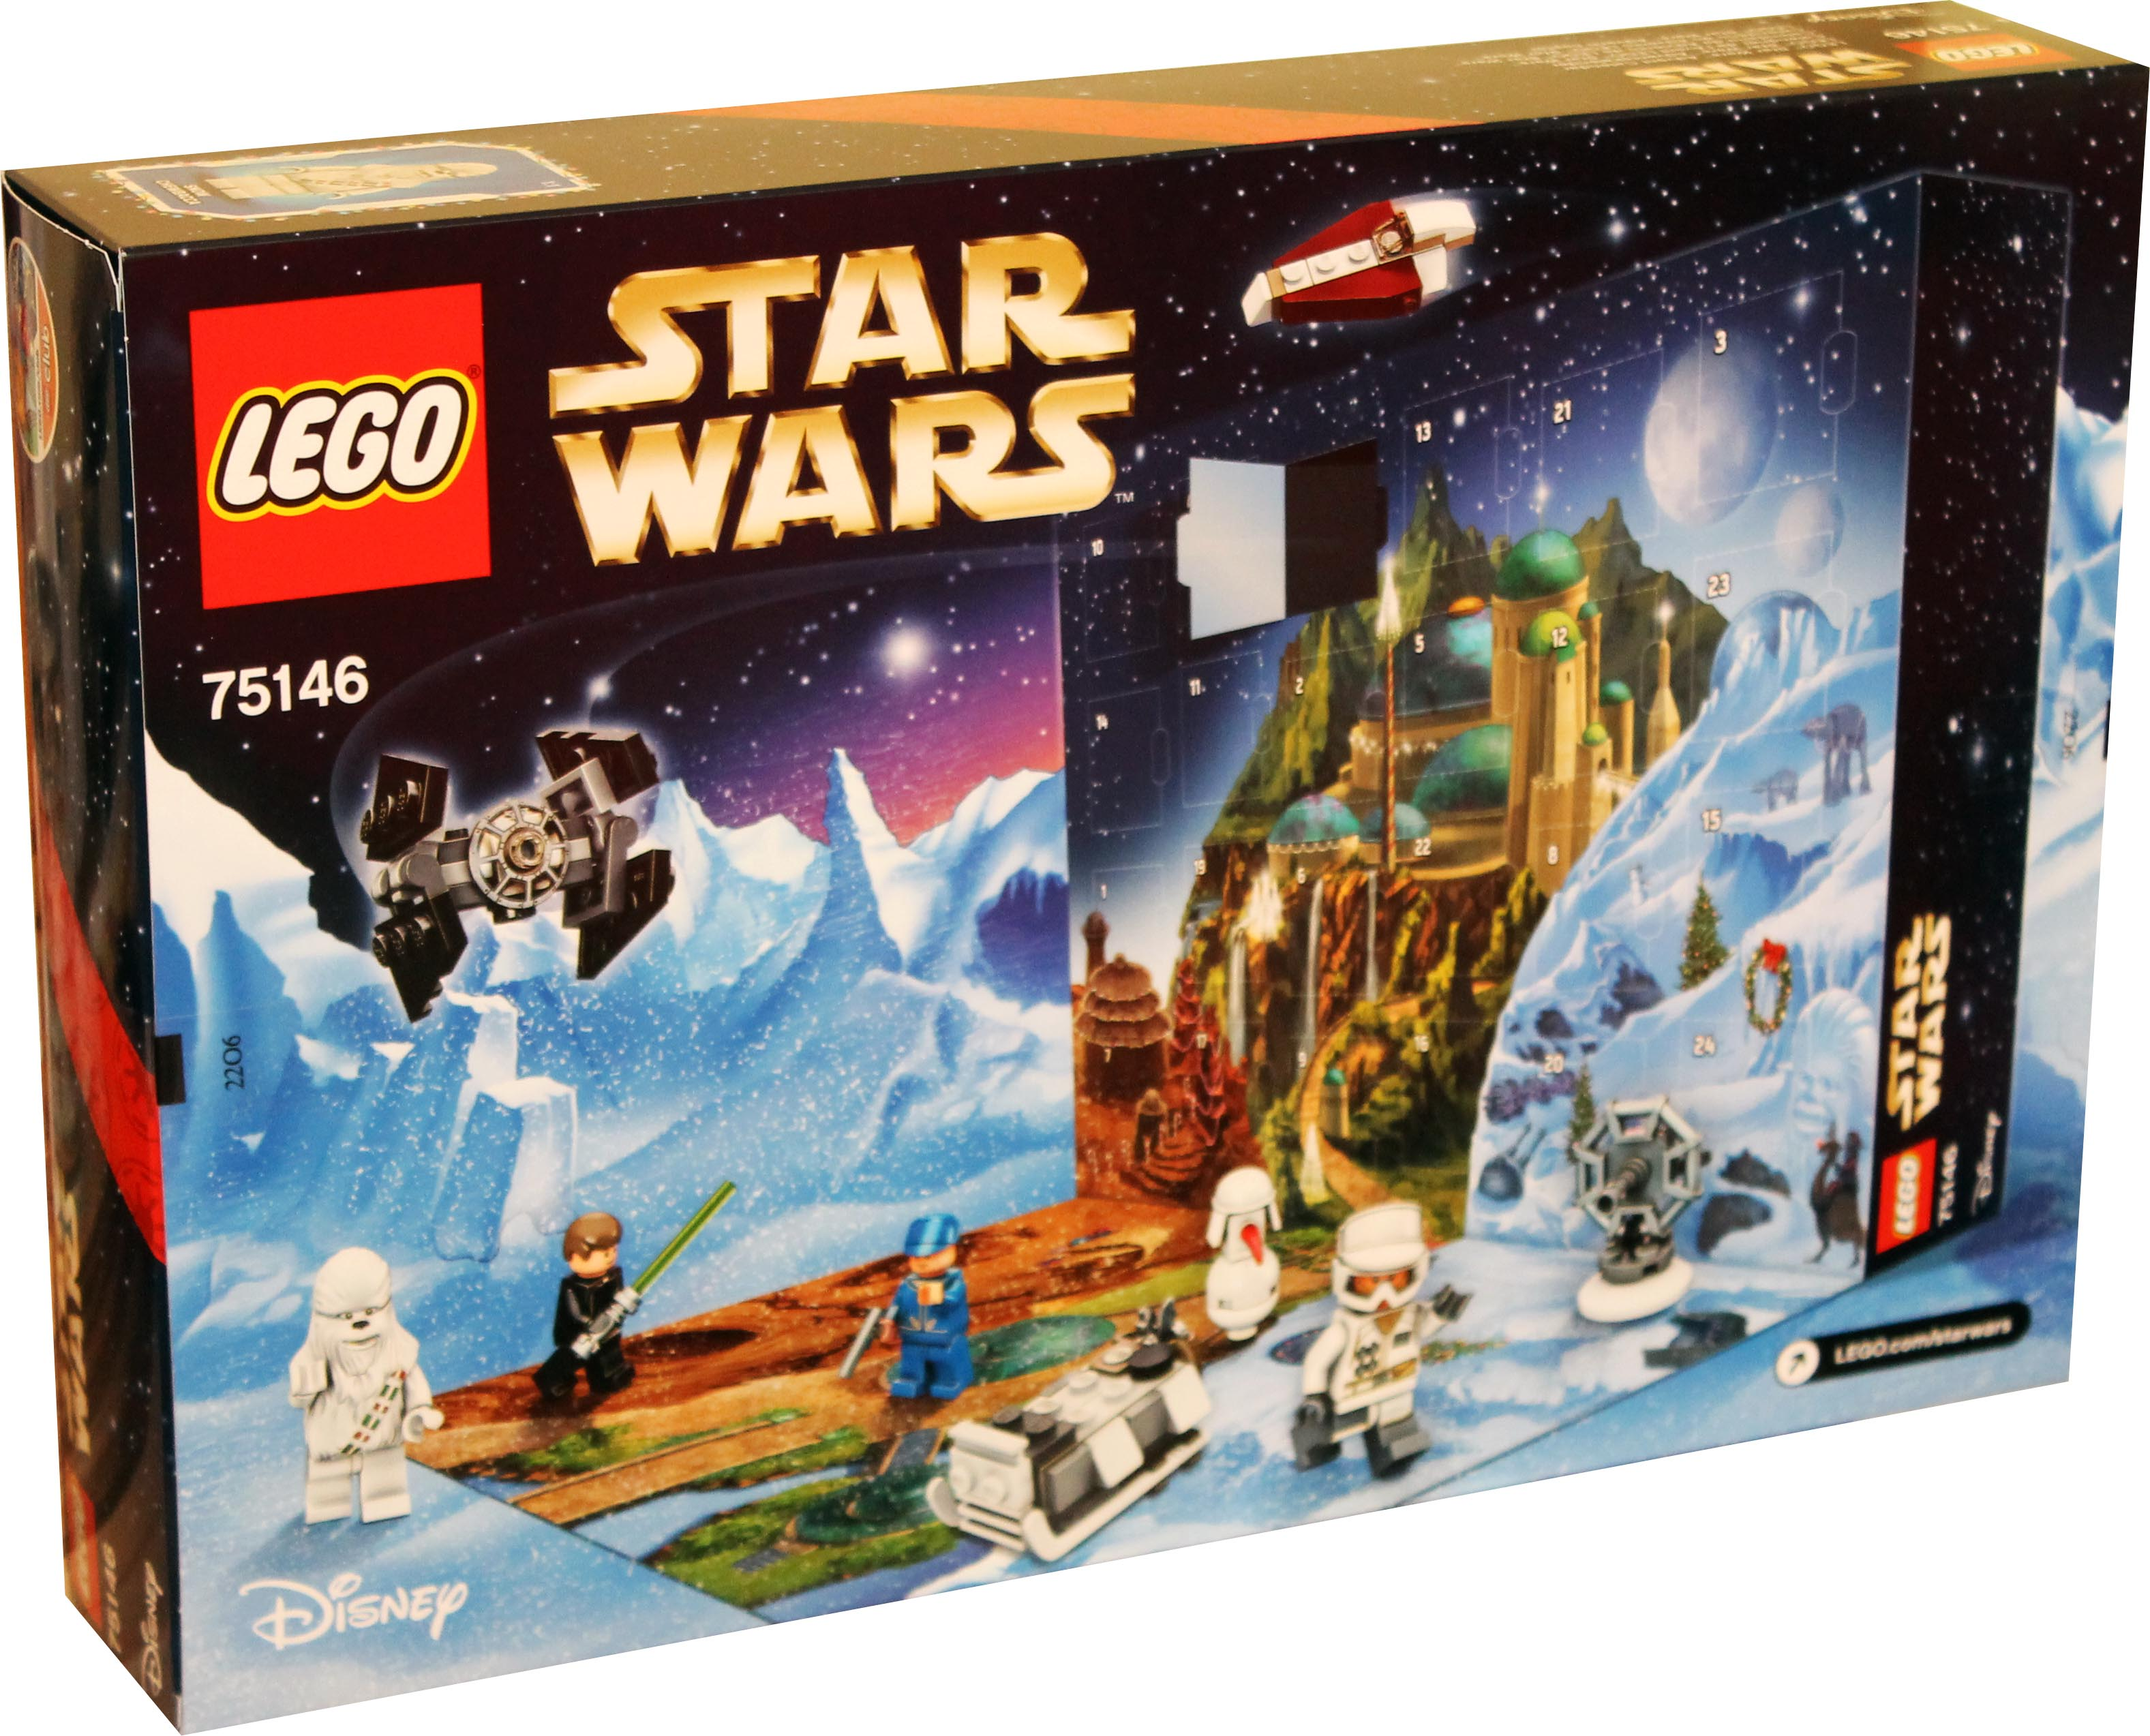 lego star wars 75146 disney adventskalender weihnachtskalender 2016 neu 5702015593953 ebay. Black Bedroom Furniture Sets. Home Design Ideas